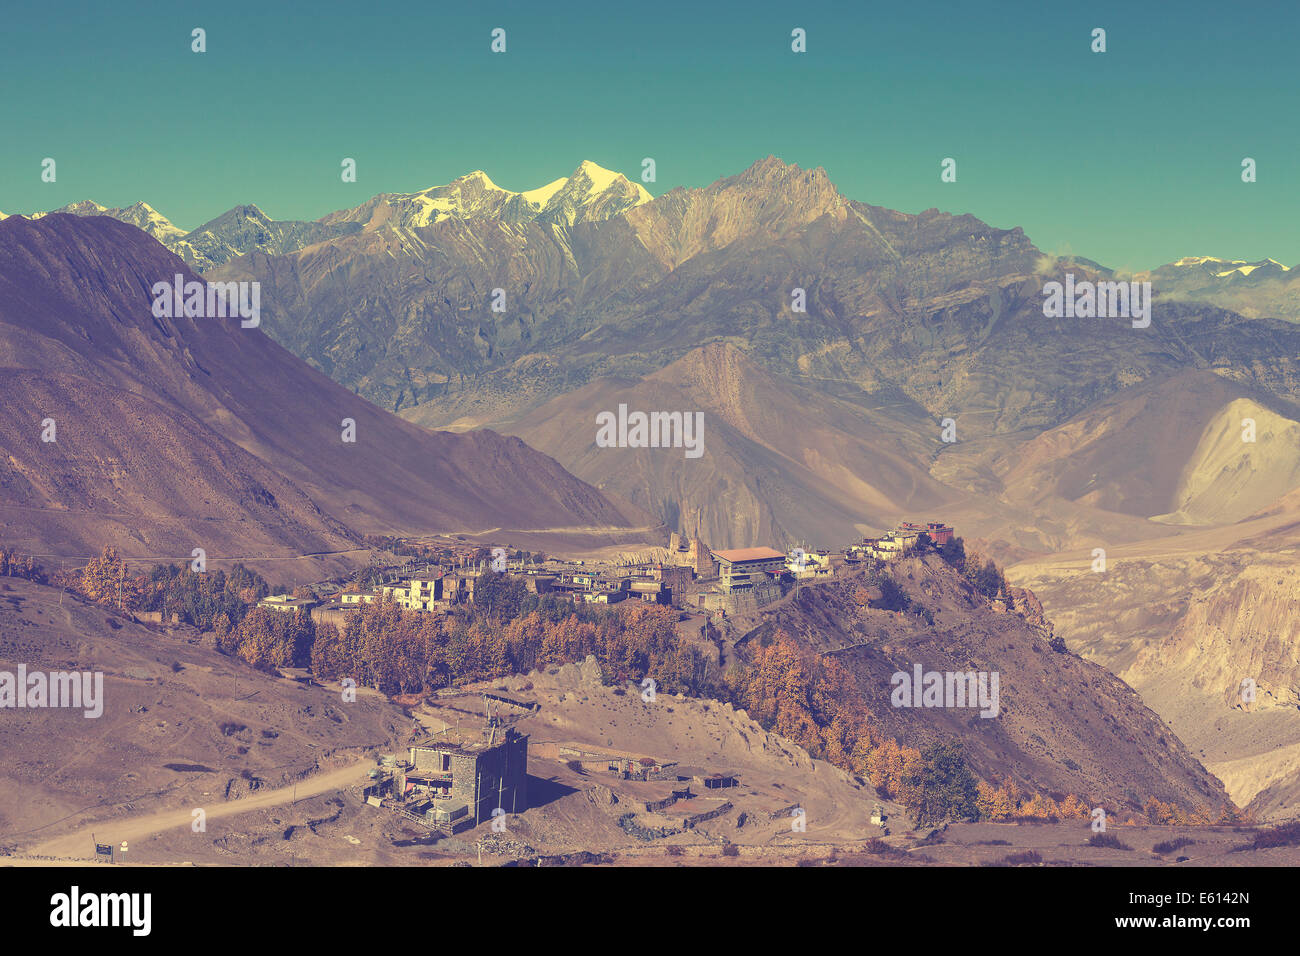 Beautiful vintage mountain landscape, Himalayas in Nepal. - Stock Image